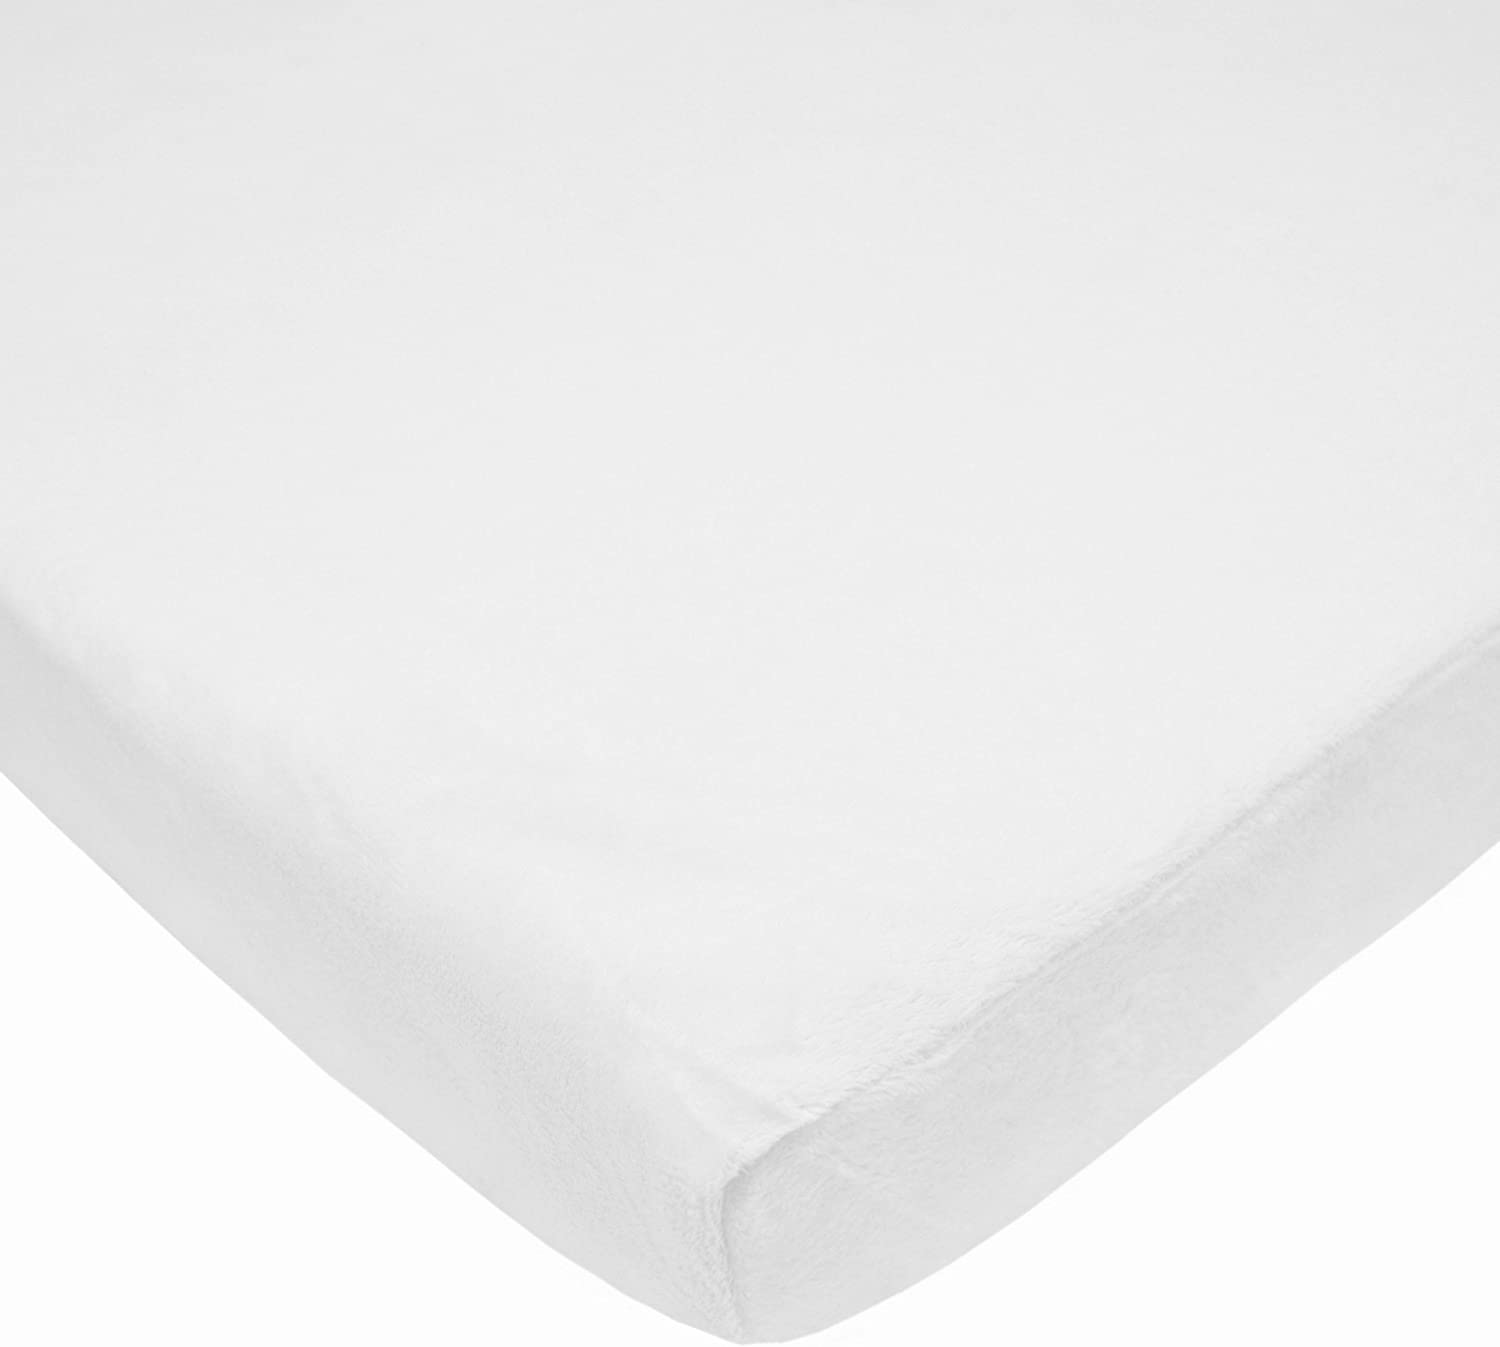 American Baby Company Heavenly Soft Chenille Fitted Pack N Play Playard Sheet, White, 27 x 39